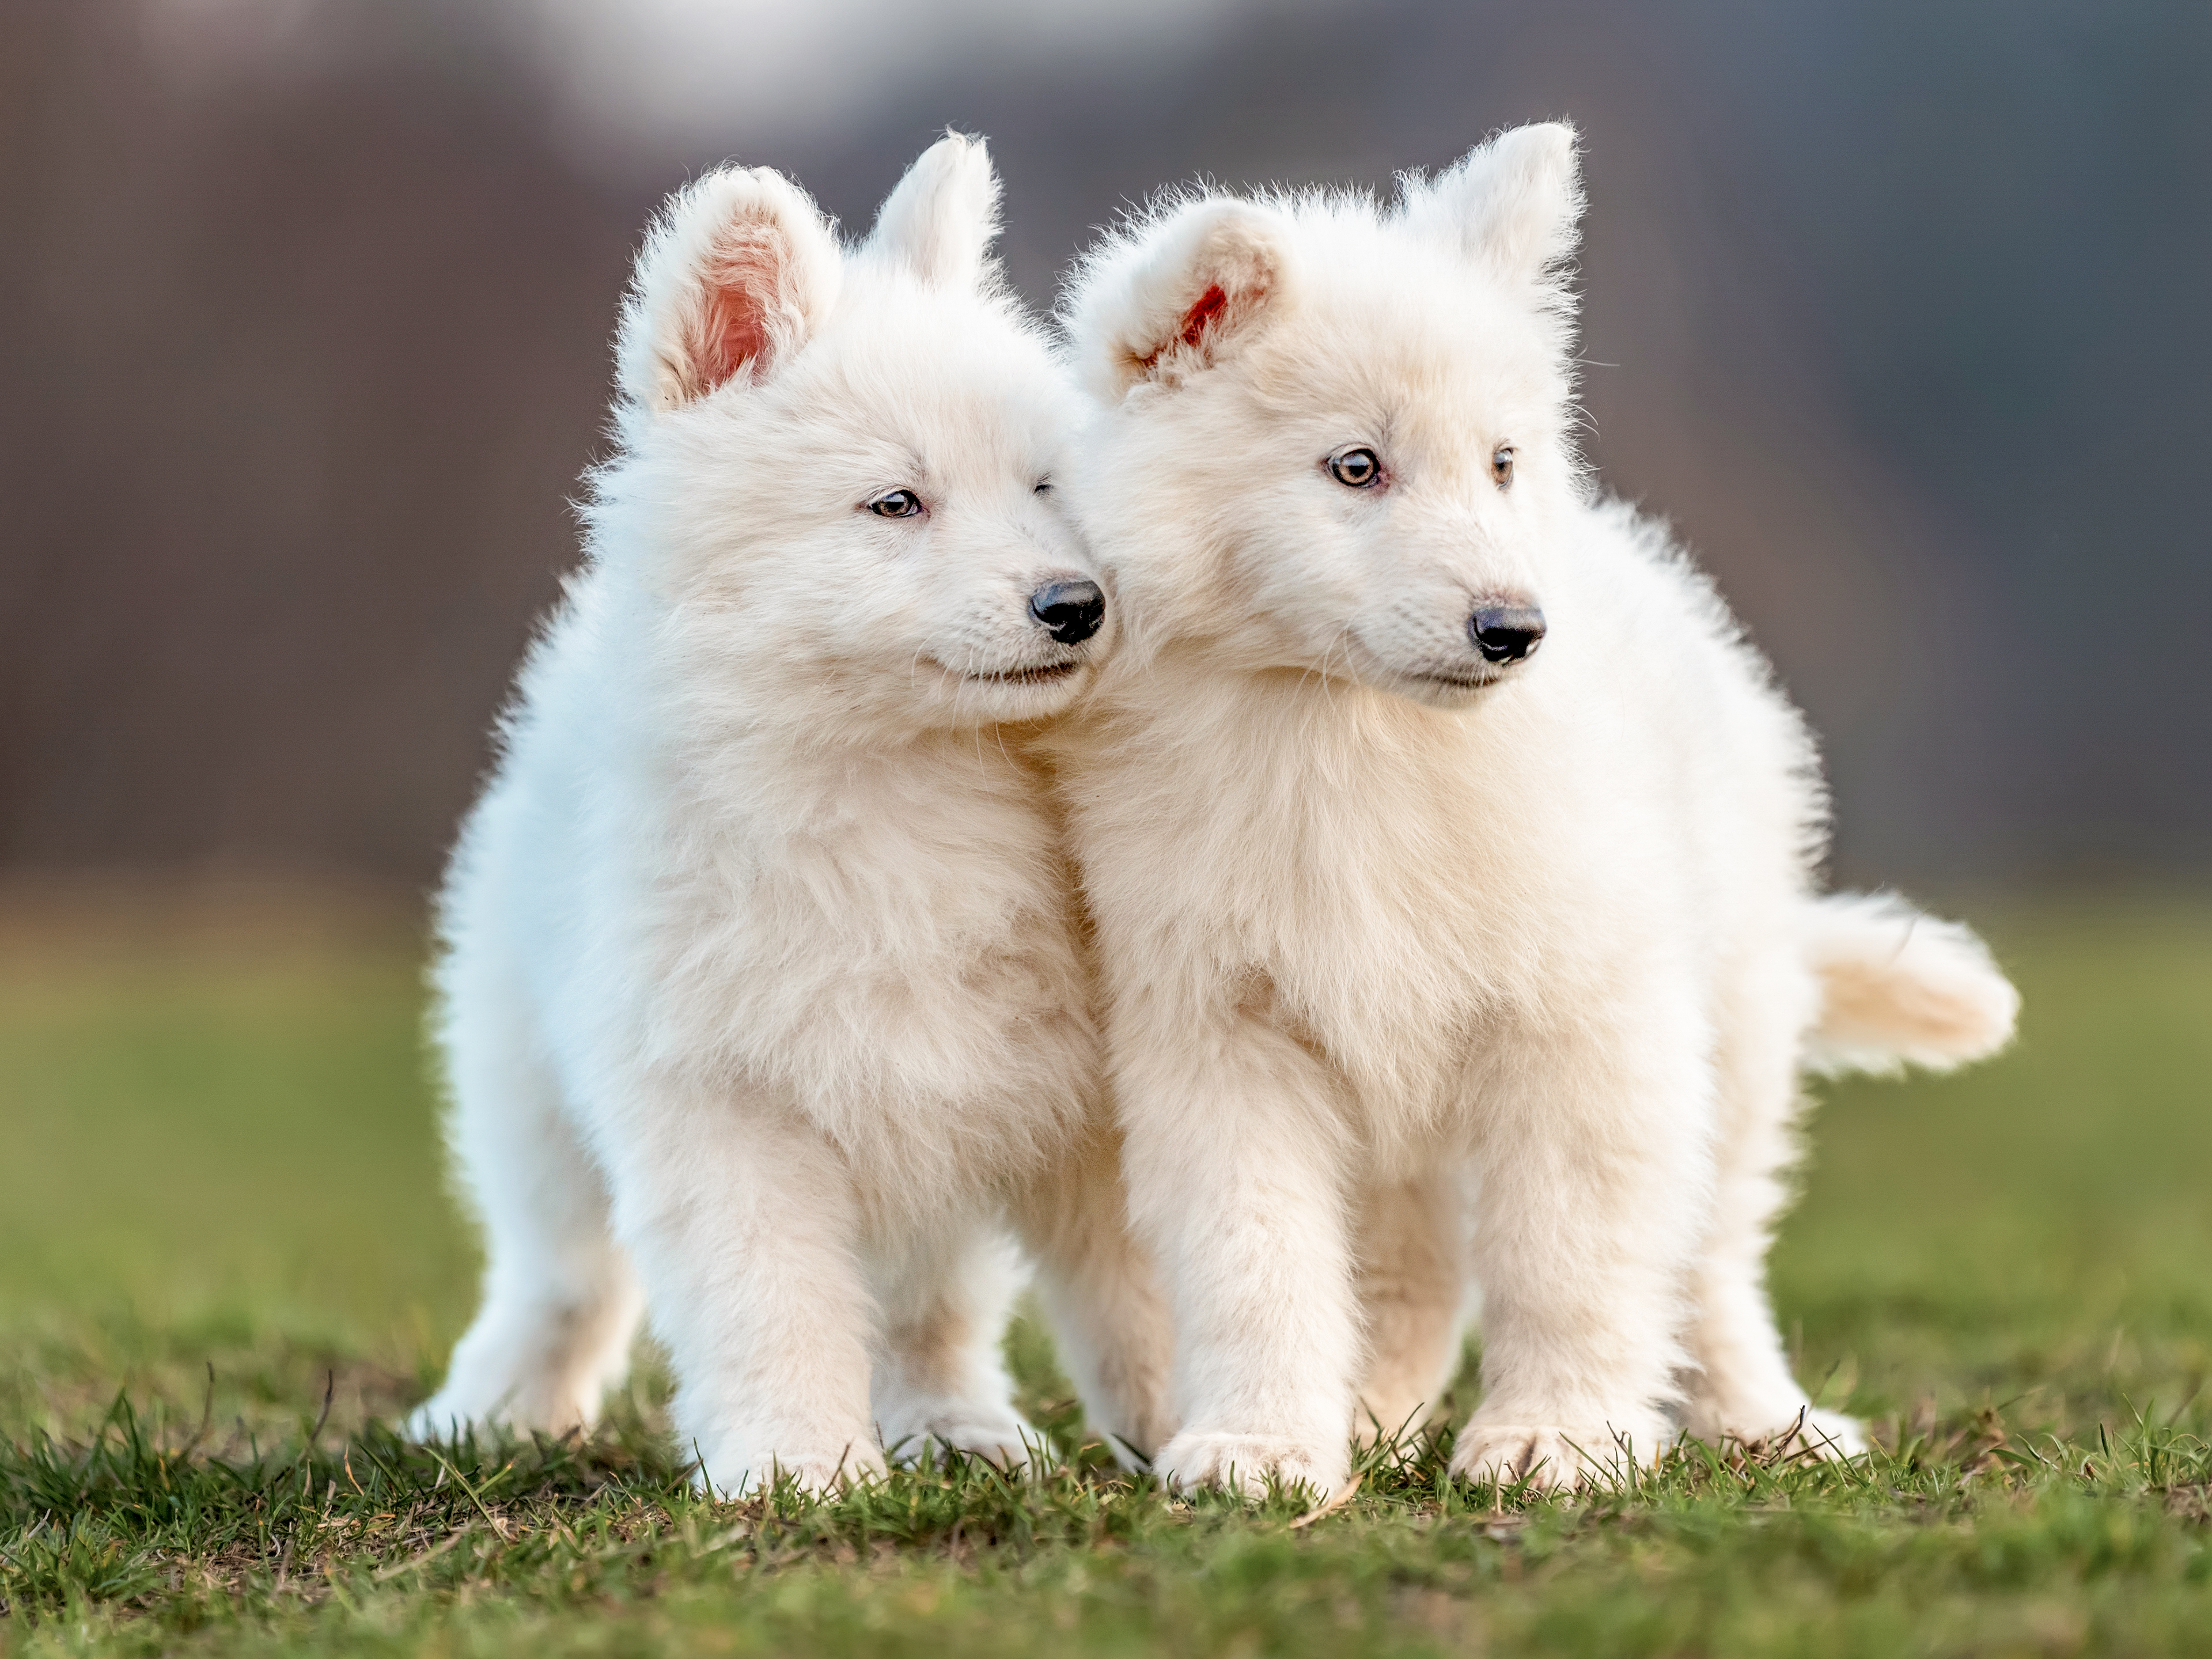 White Swiss Shepherd Dog puppies walking together outside